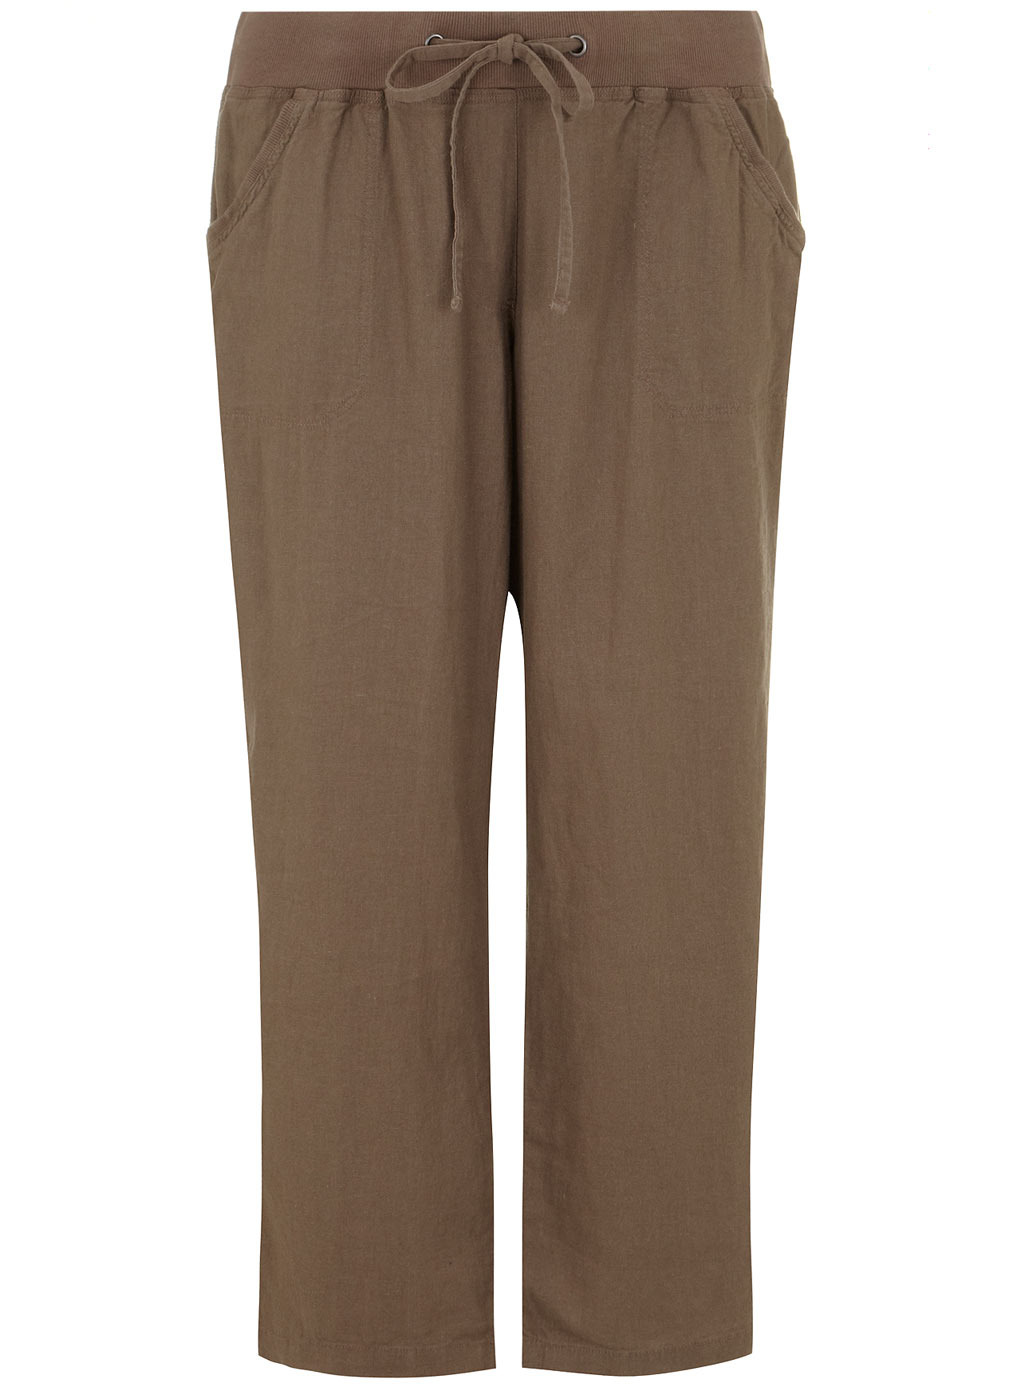 Mocha Linen Blend Trousers - length: standard; pattern: plain; waist detail: belted waist/tie at waist/drawstring; waist: mid/regular rise; predominant colour: taupe; occasions: casual, holiday; fibres: linen - mix; texture group: linen; fit: wide leg; pattern type: fabric; style: standard; season: s/s 2014